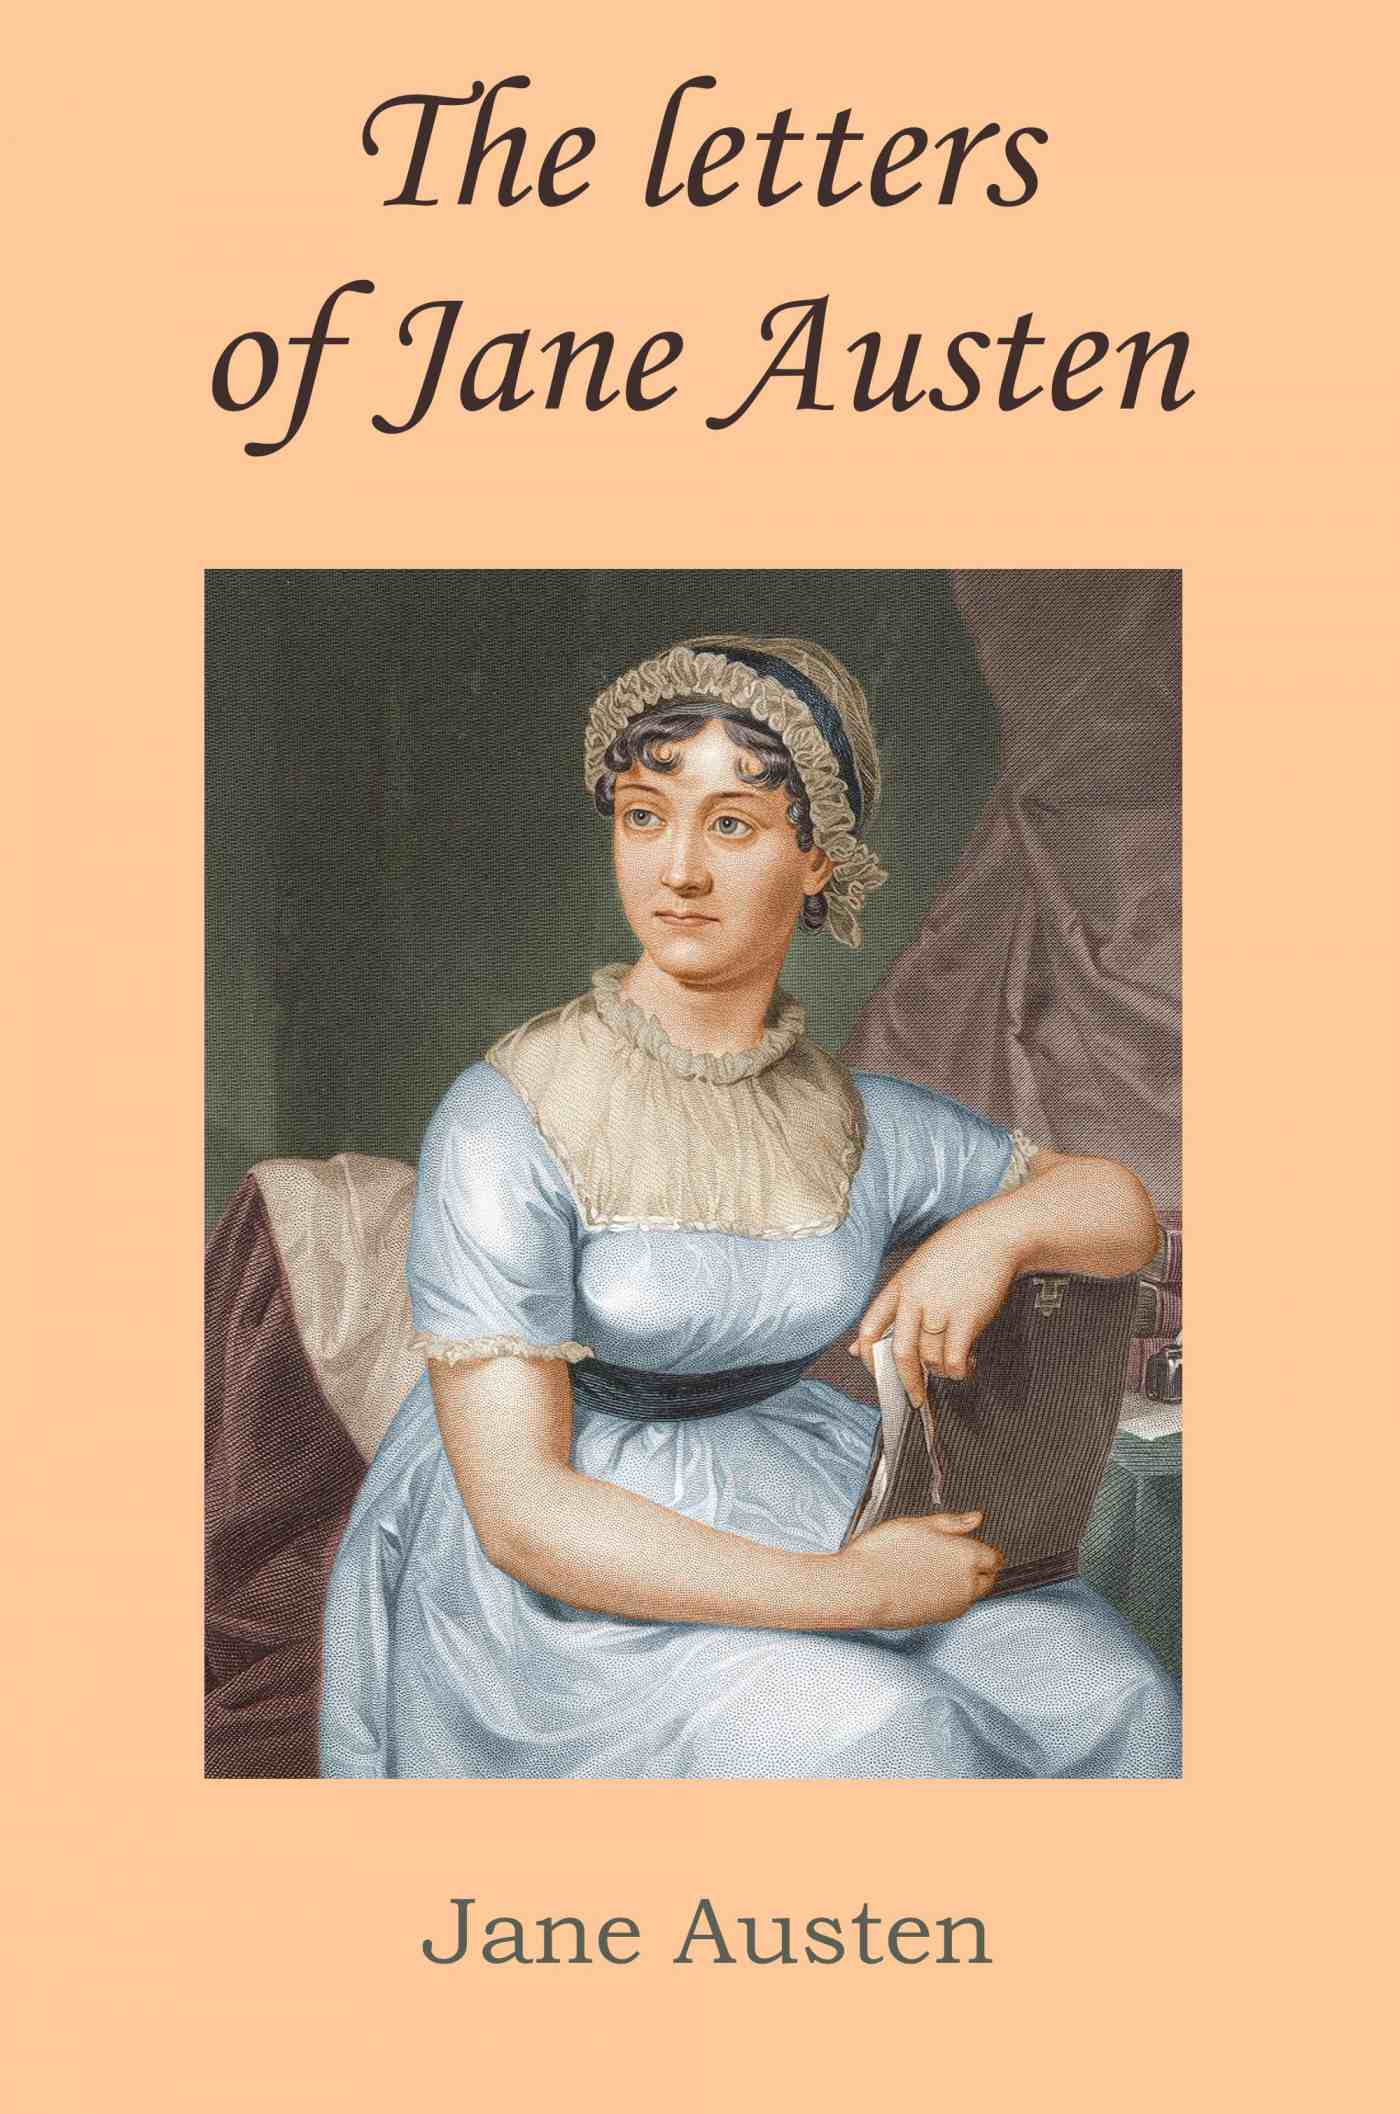 The letters of Jane Austen - Ebook (Książka PDF) do pobrania w formacie PDF